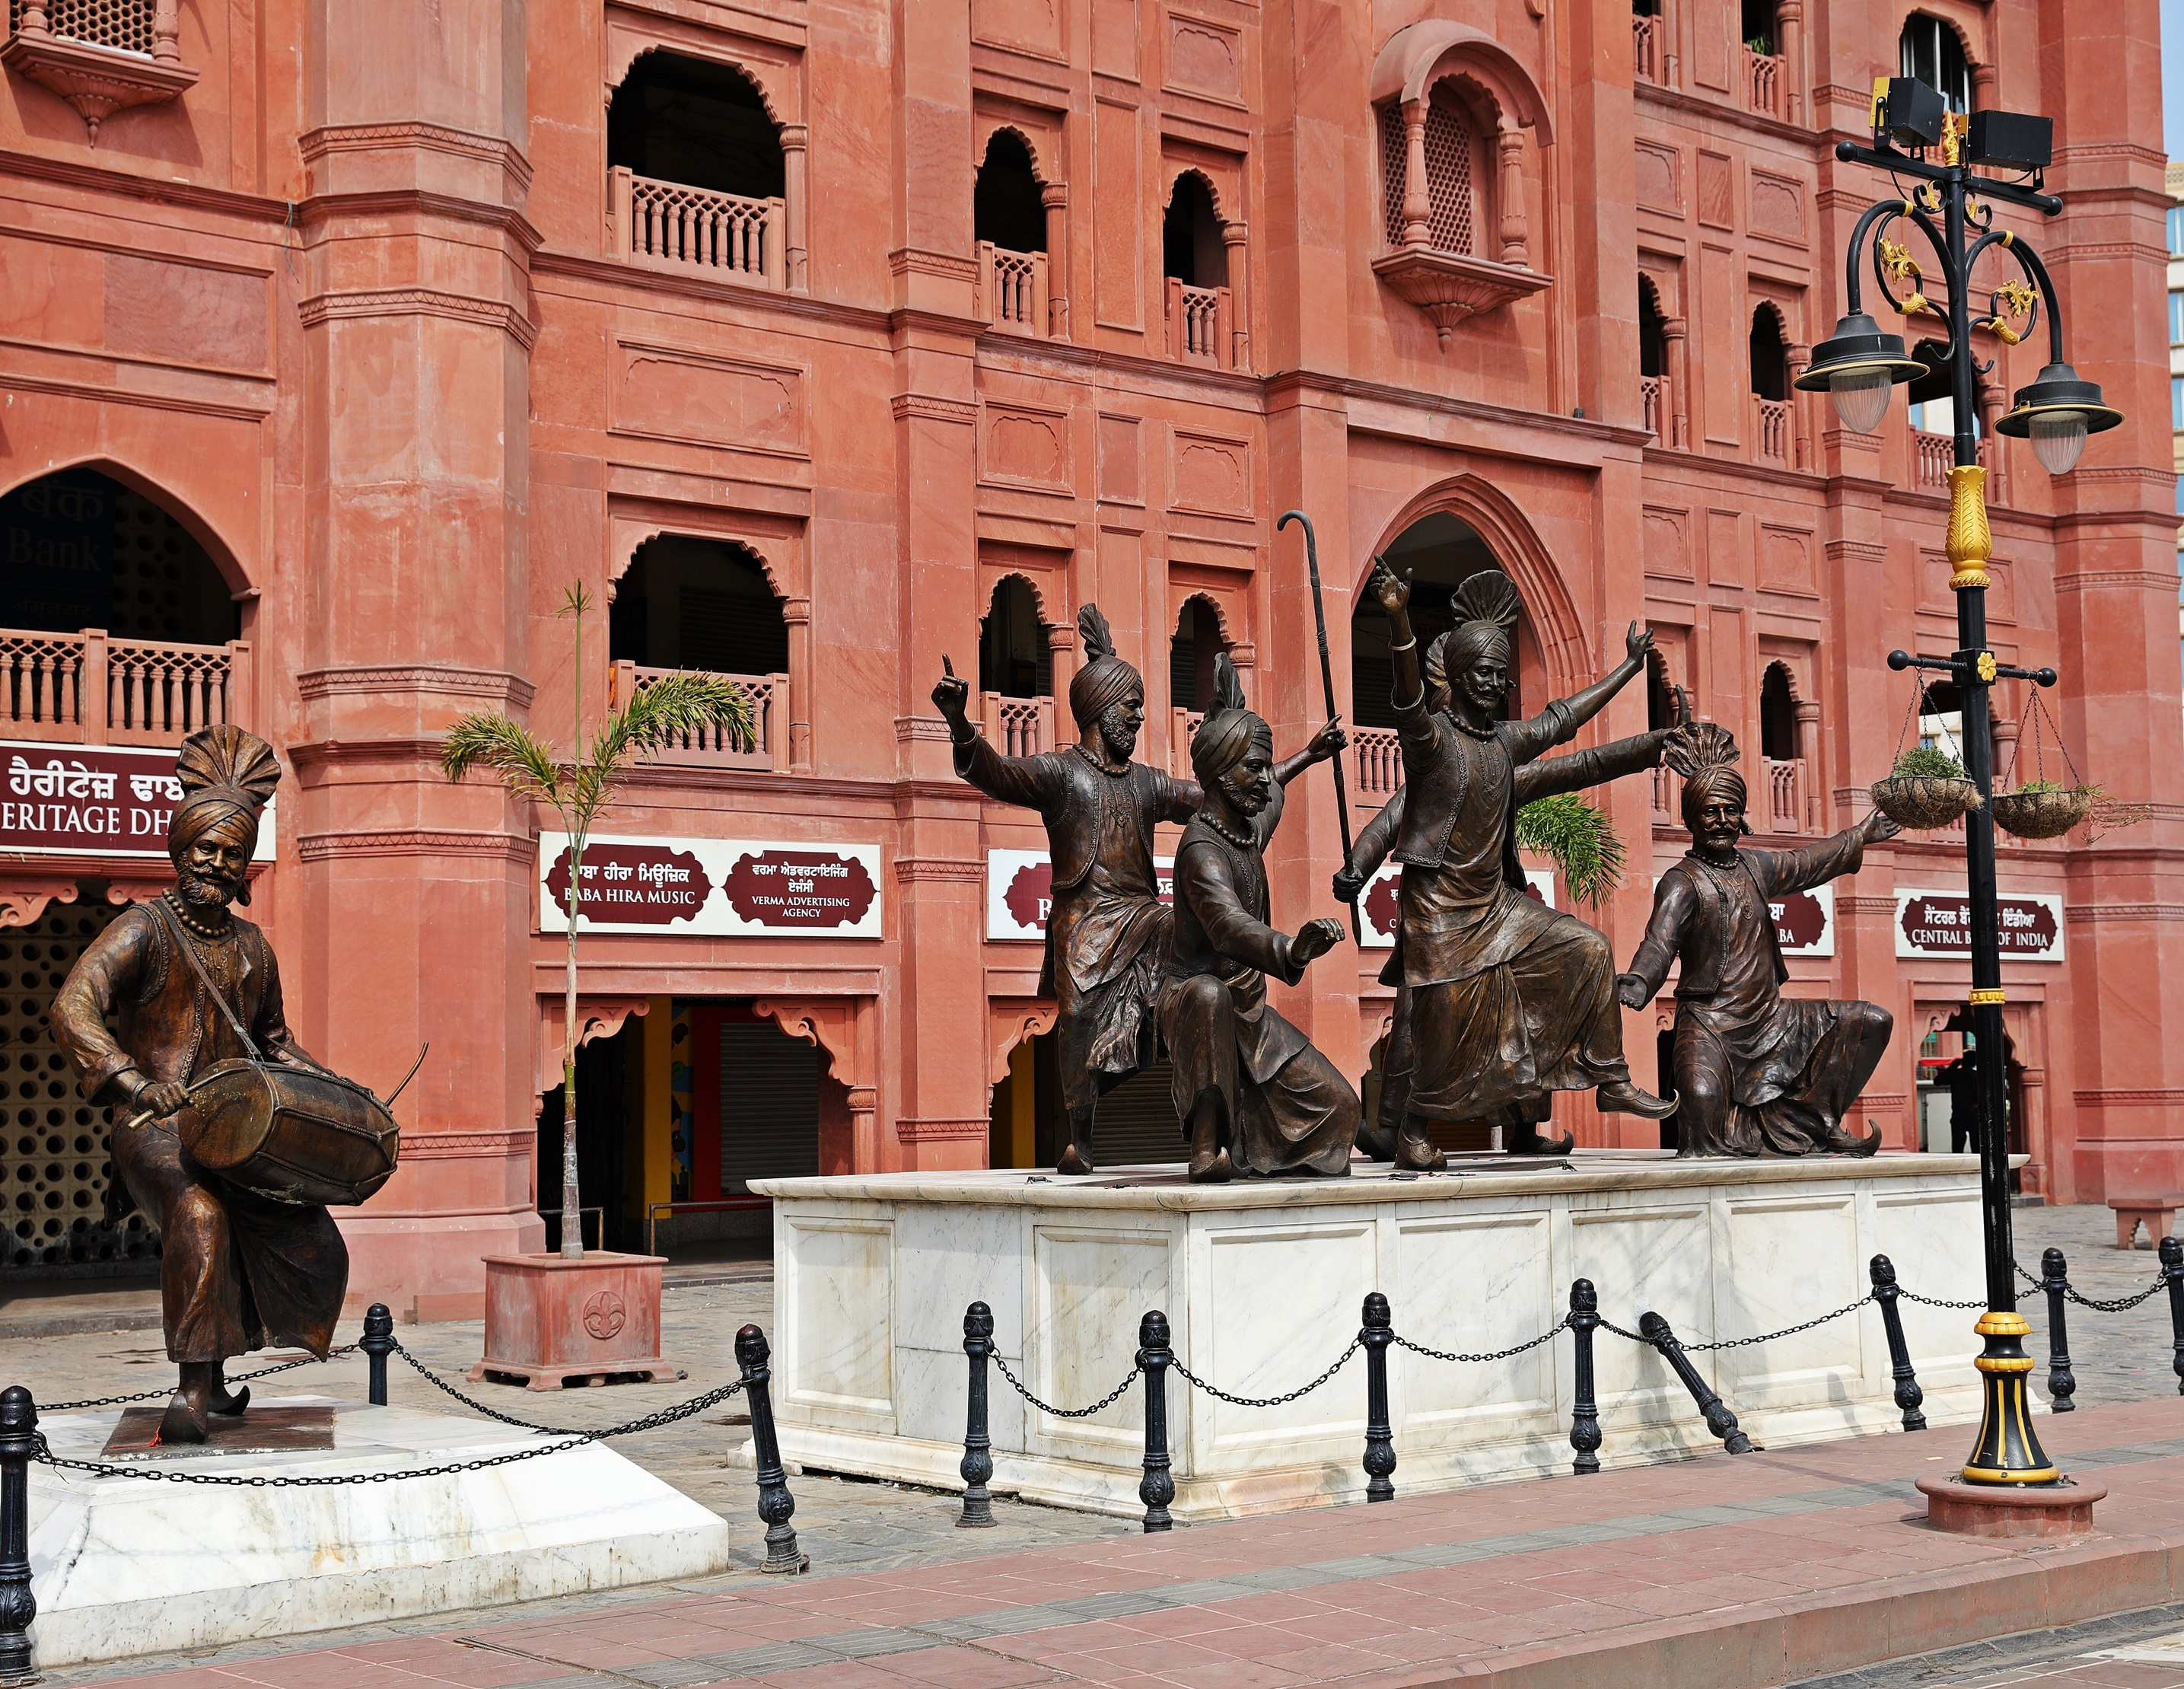 Statues of bhangra dancers on Heritage Street, Amritsar